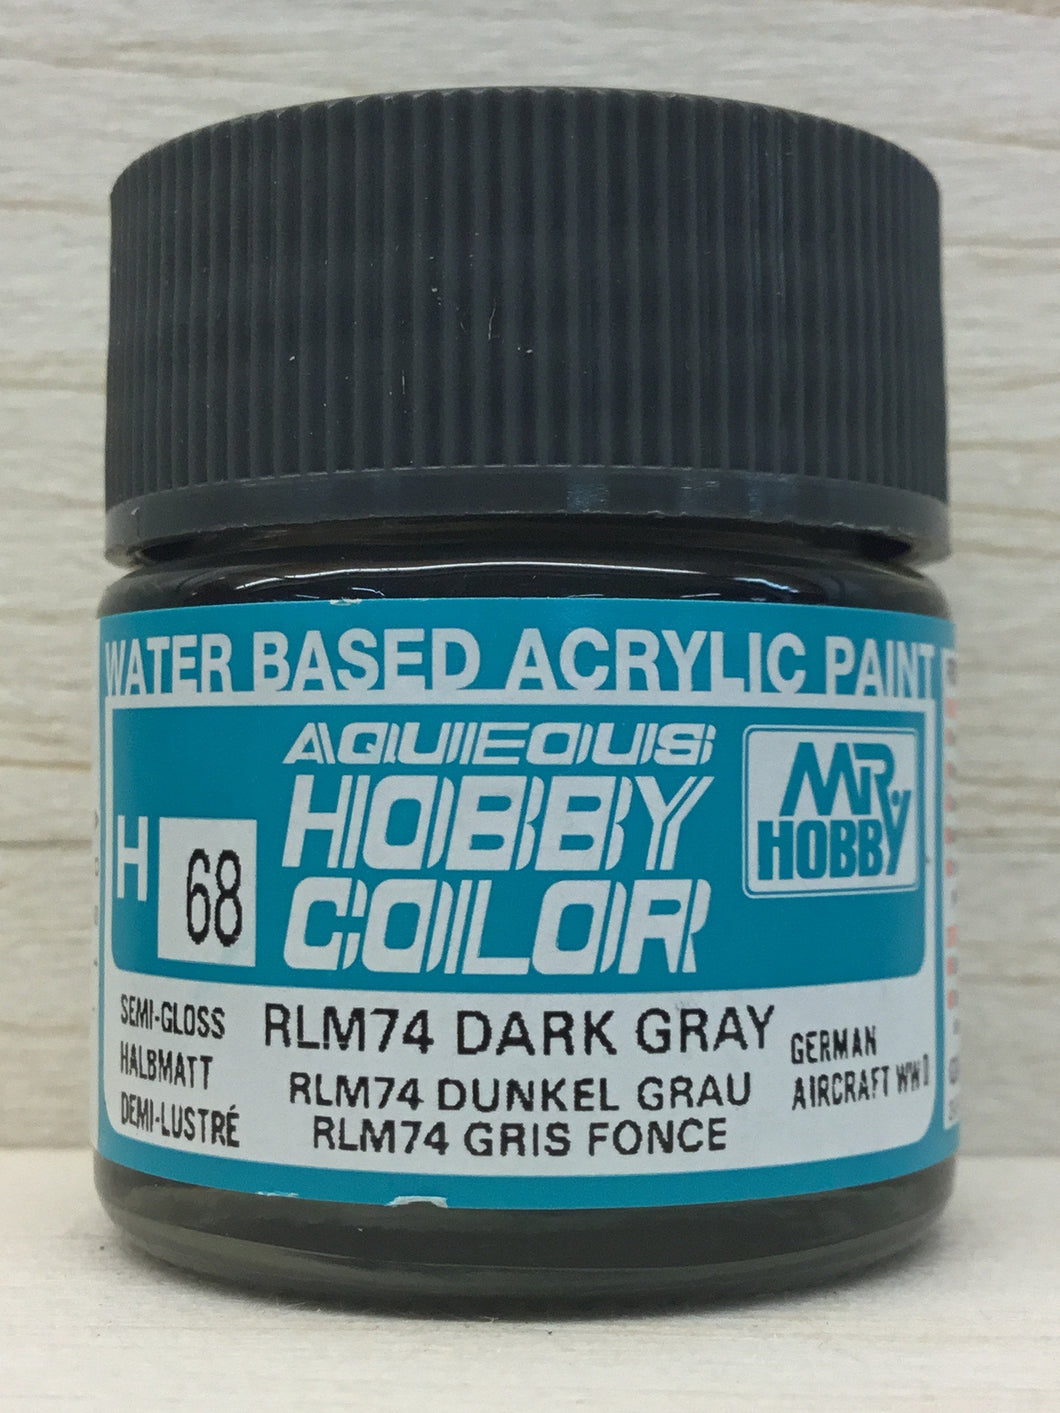 GUNZE MR HOBBY COLOR H68 SEMI GLOSS RLM 74 DARK GRAY